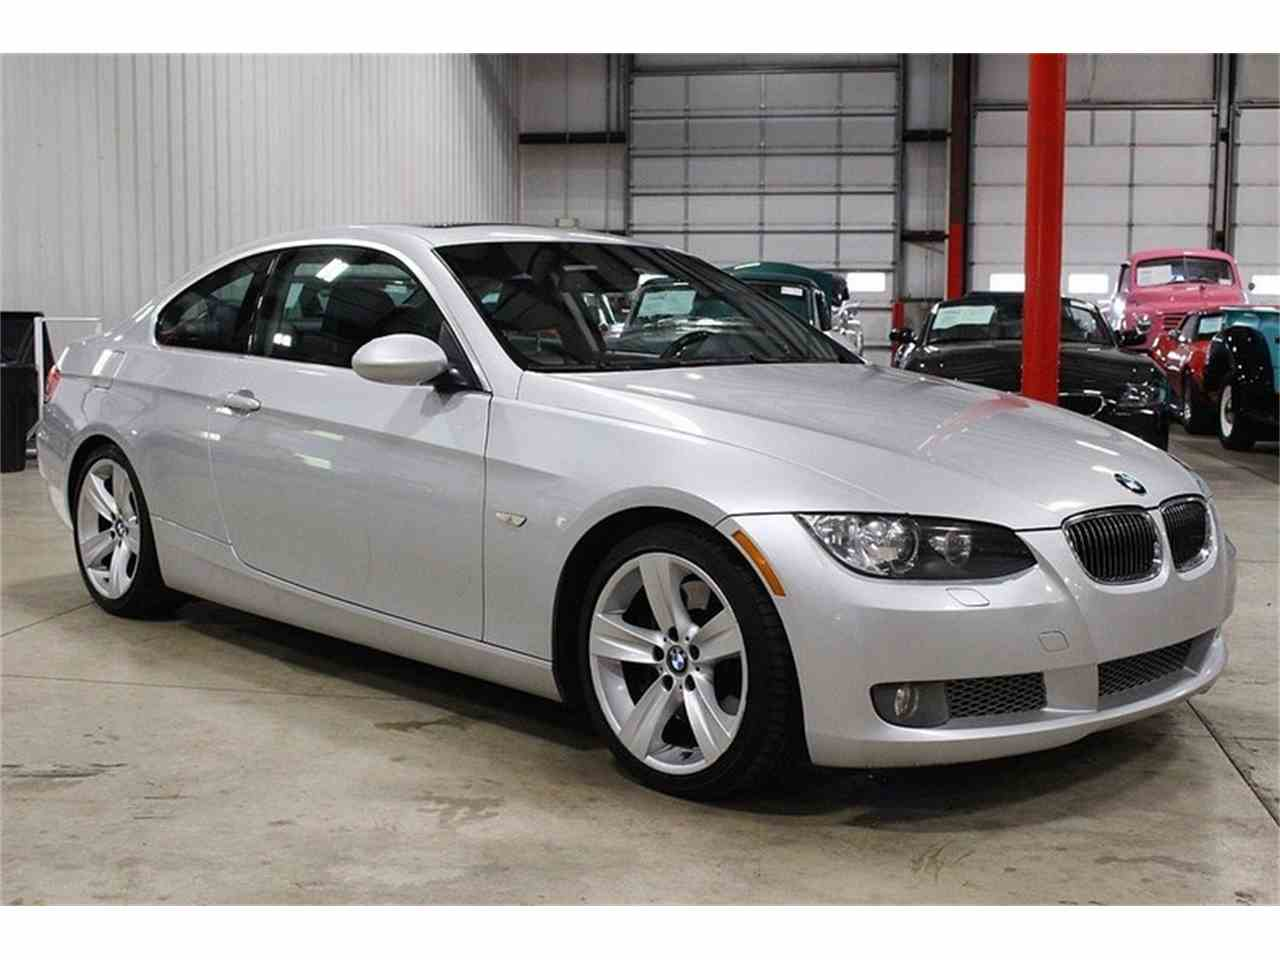 Large Picture of '07 BMW 335i located in Kentwood Michigan - $9,900.00 - LS5N